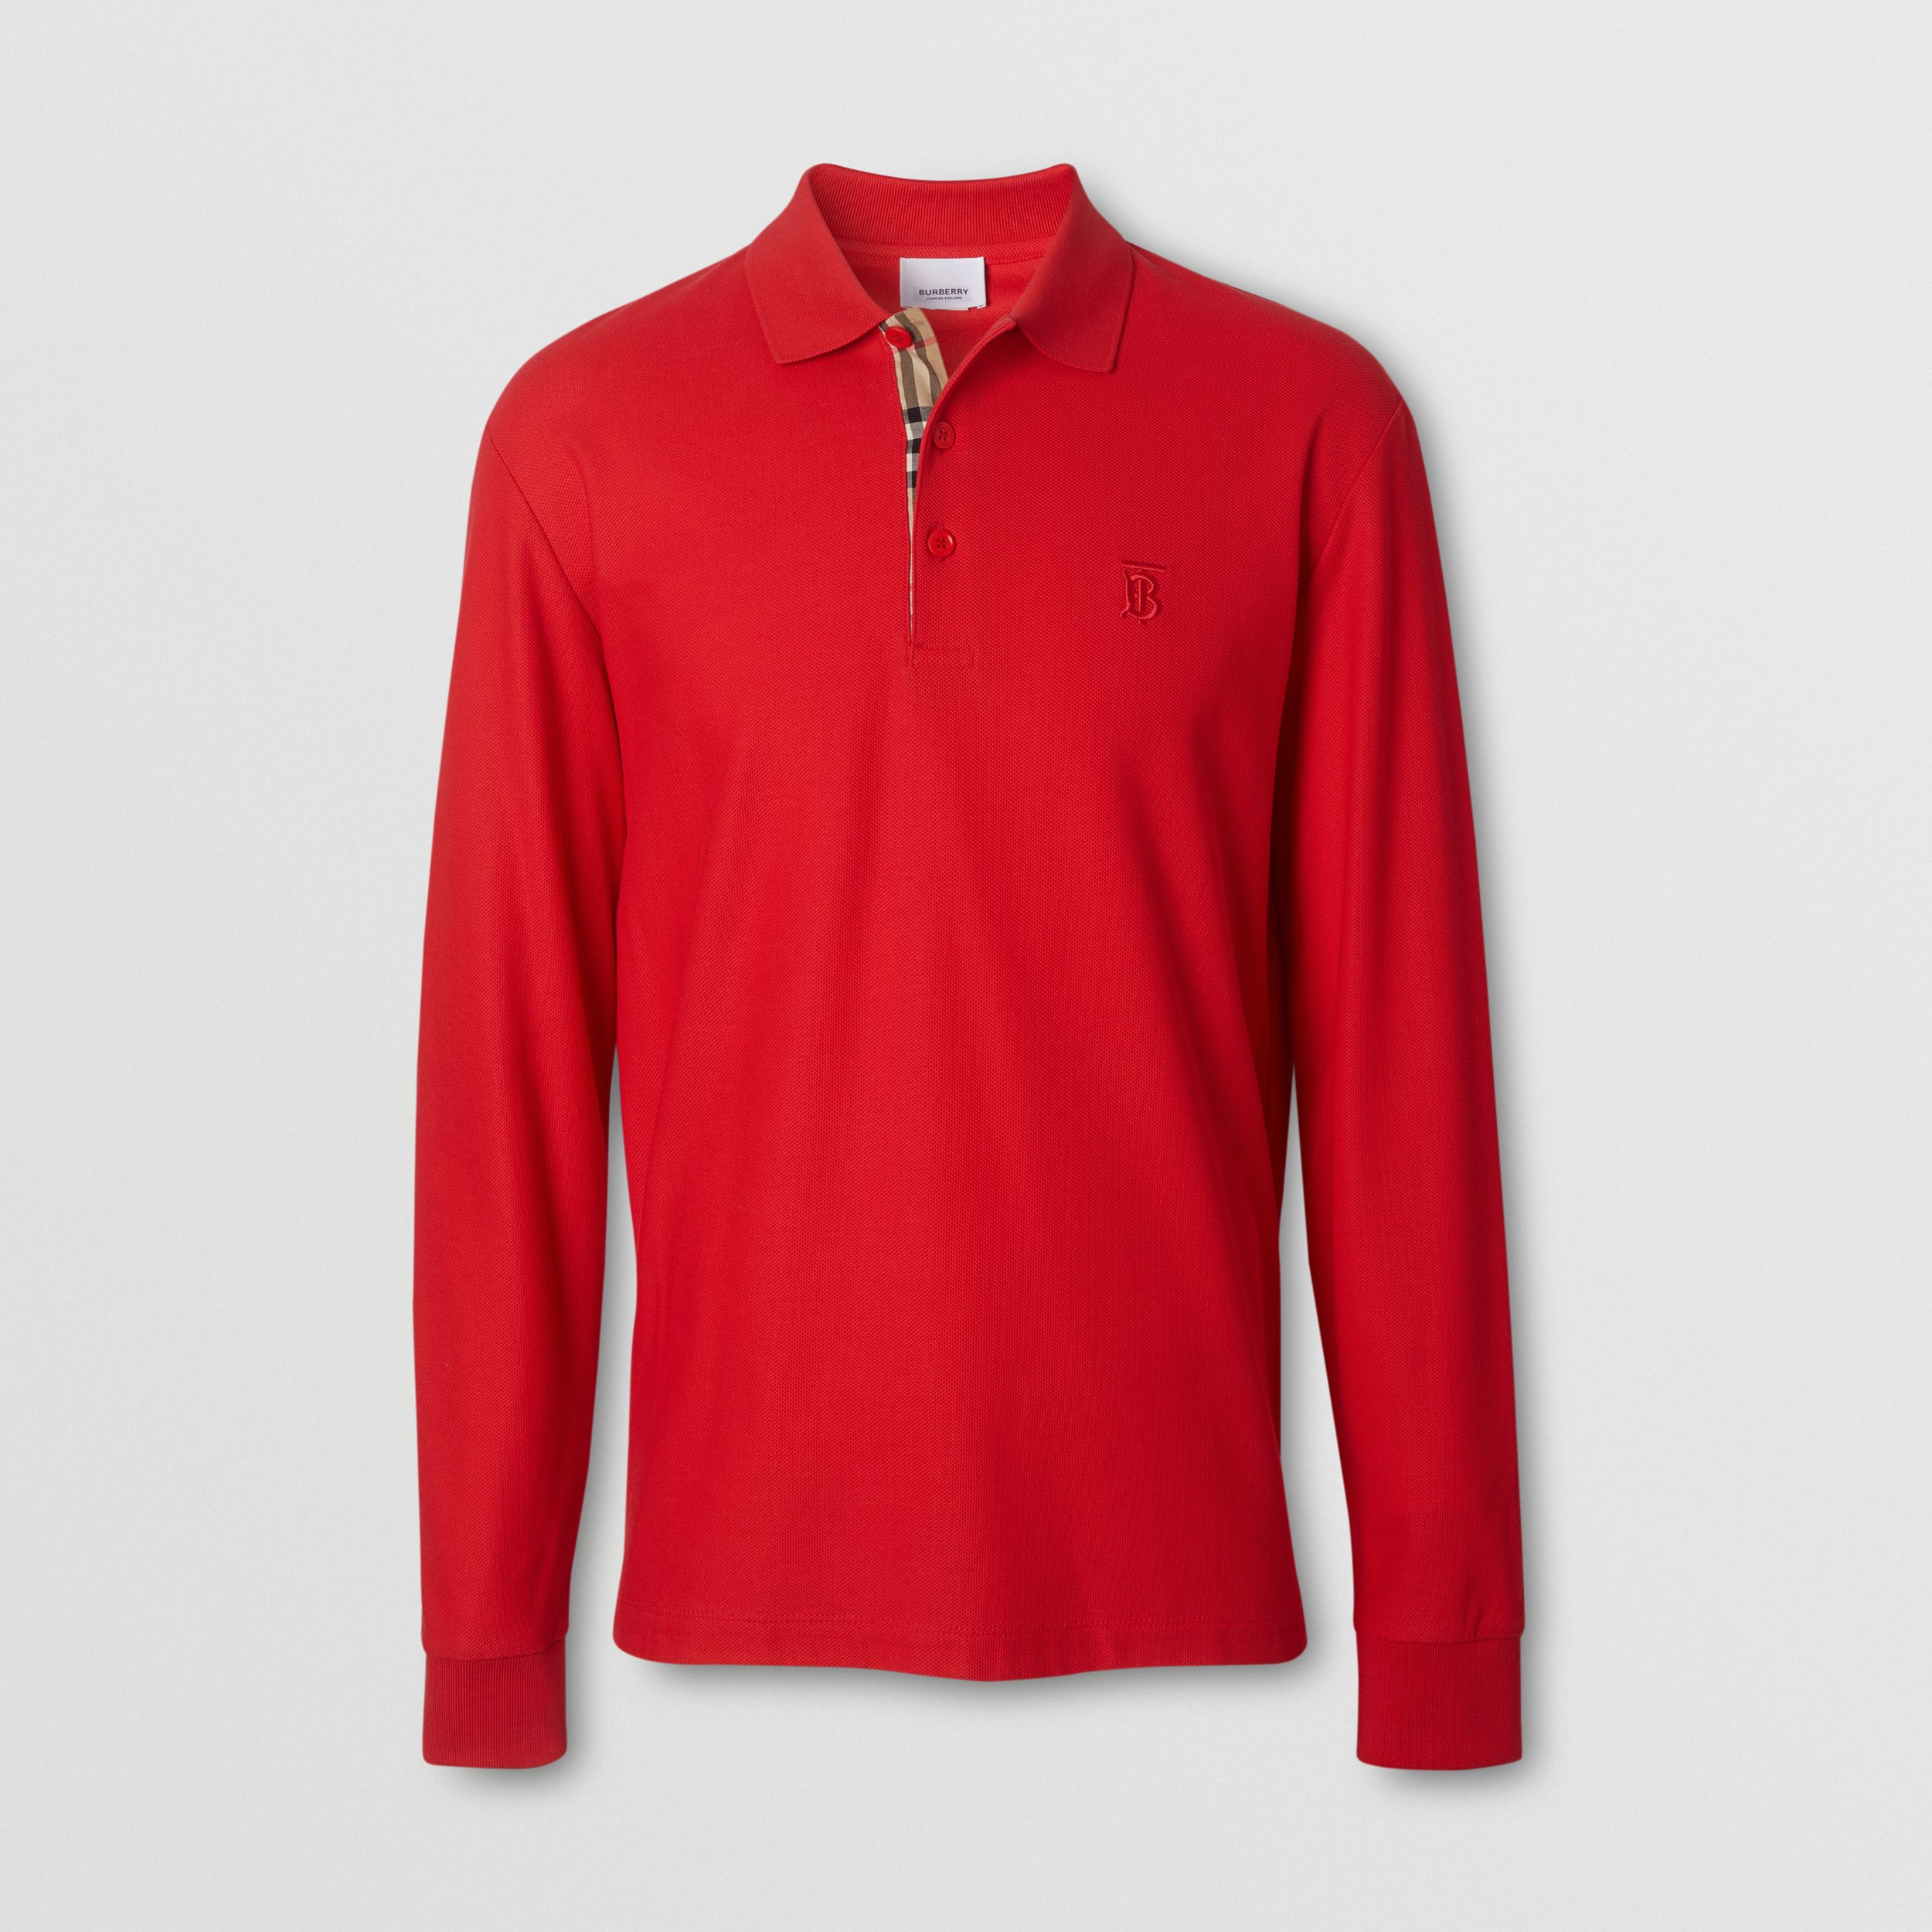 Long-sleeve Monogram Motif Cotton Piqué Polo Shirt in Bright Red - Men | Burberry - 4